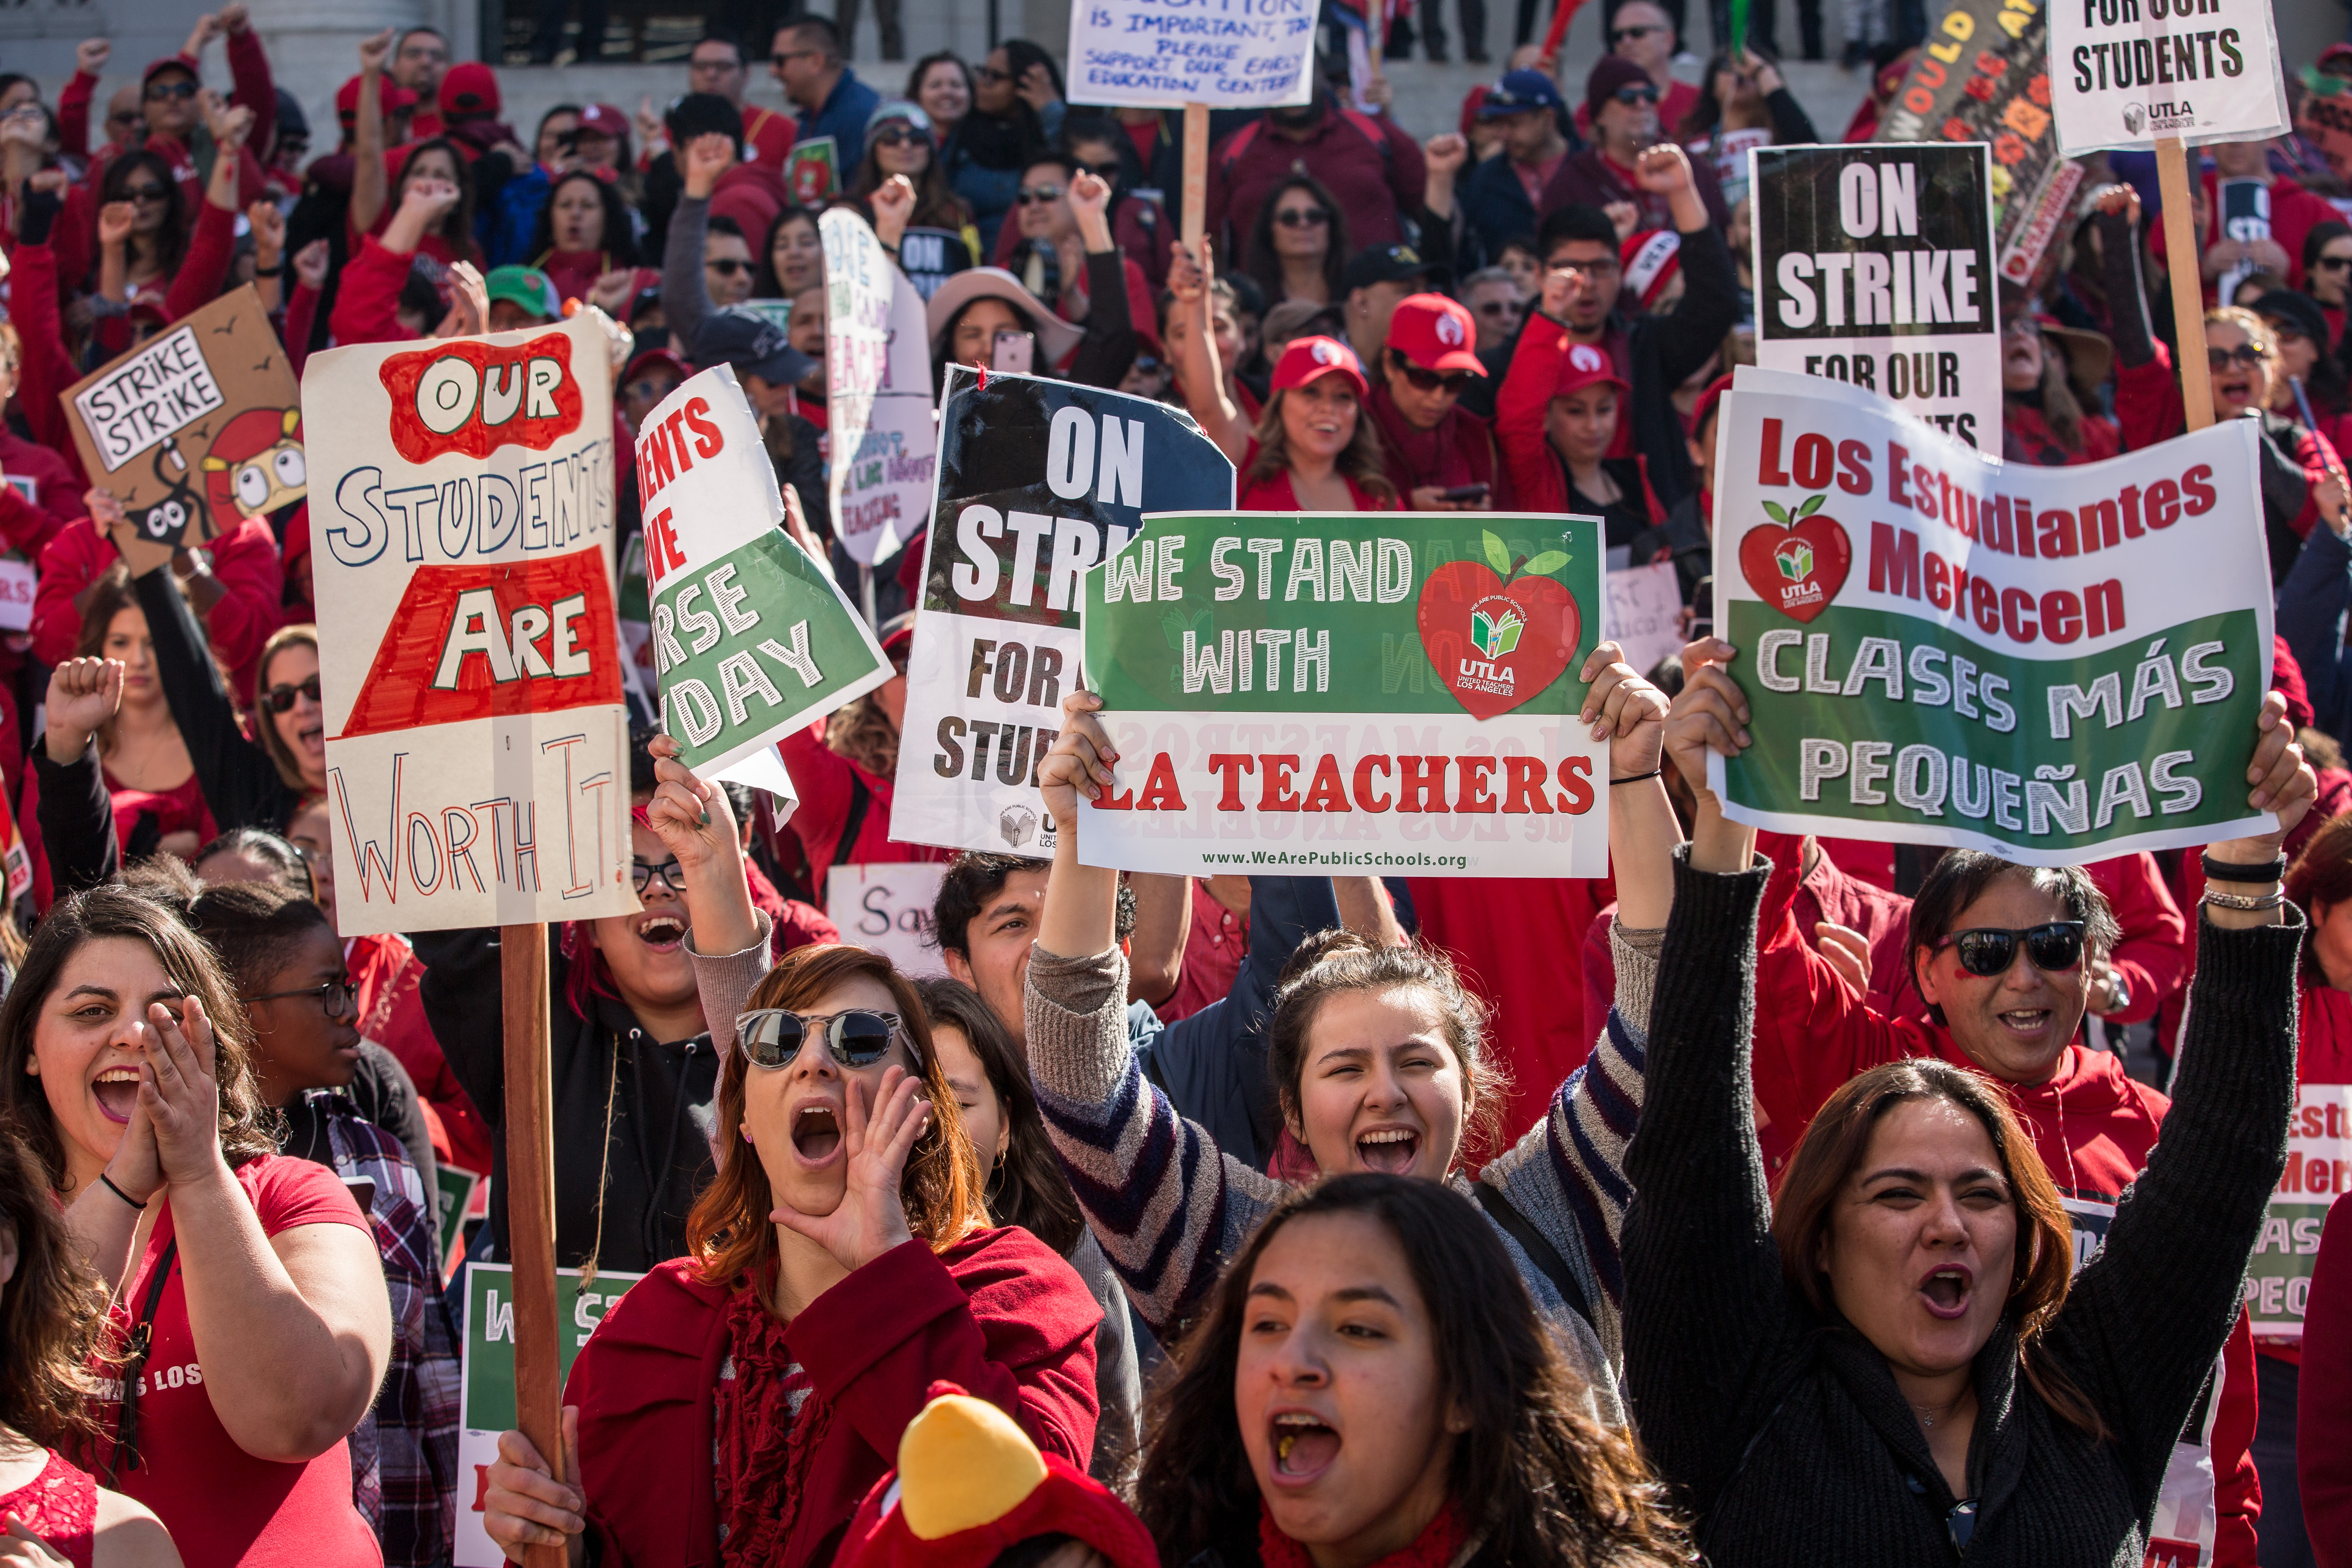 LOS ANGELES, CA - JANUARY 22: Educators, parents, students, and supporters of the Los Angeles teachers strike wave and cheer in Grand Park on January 22, 2019 in downtown Los Angeles, California.Thousands of striking teachers cheered for victory at the rally after it was announced that a tentative deal between the United Teachers of Los Angeles union and the Los Angeles Unified School District heavily favored educators' demands including a cap on rising class sizes, funding for school nurses, and a significant pay increase. (Photo by Scott Heins/Getty Images)